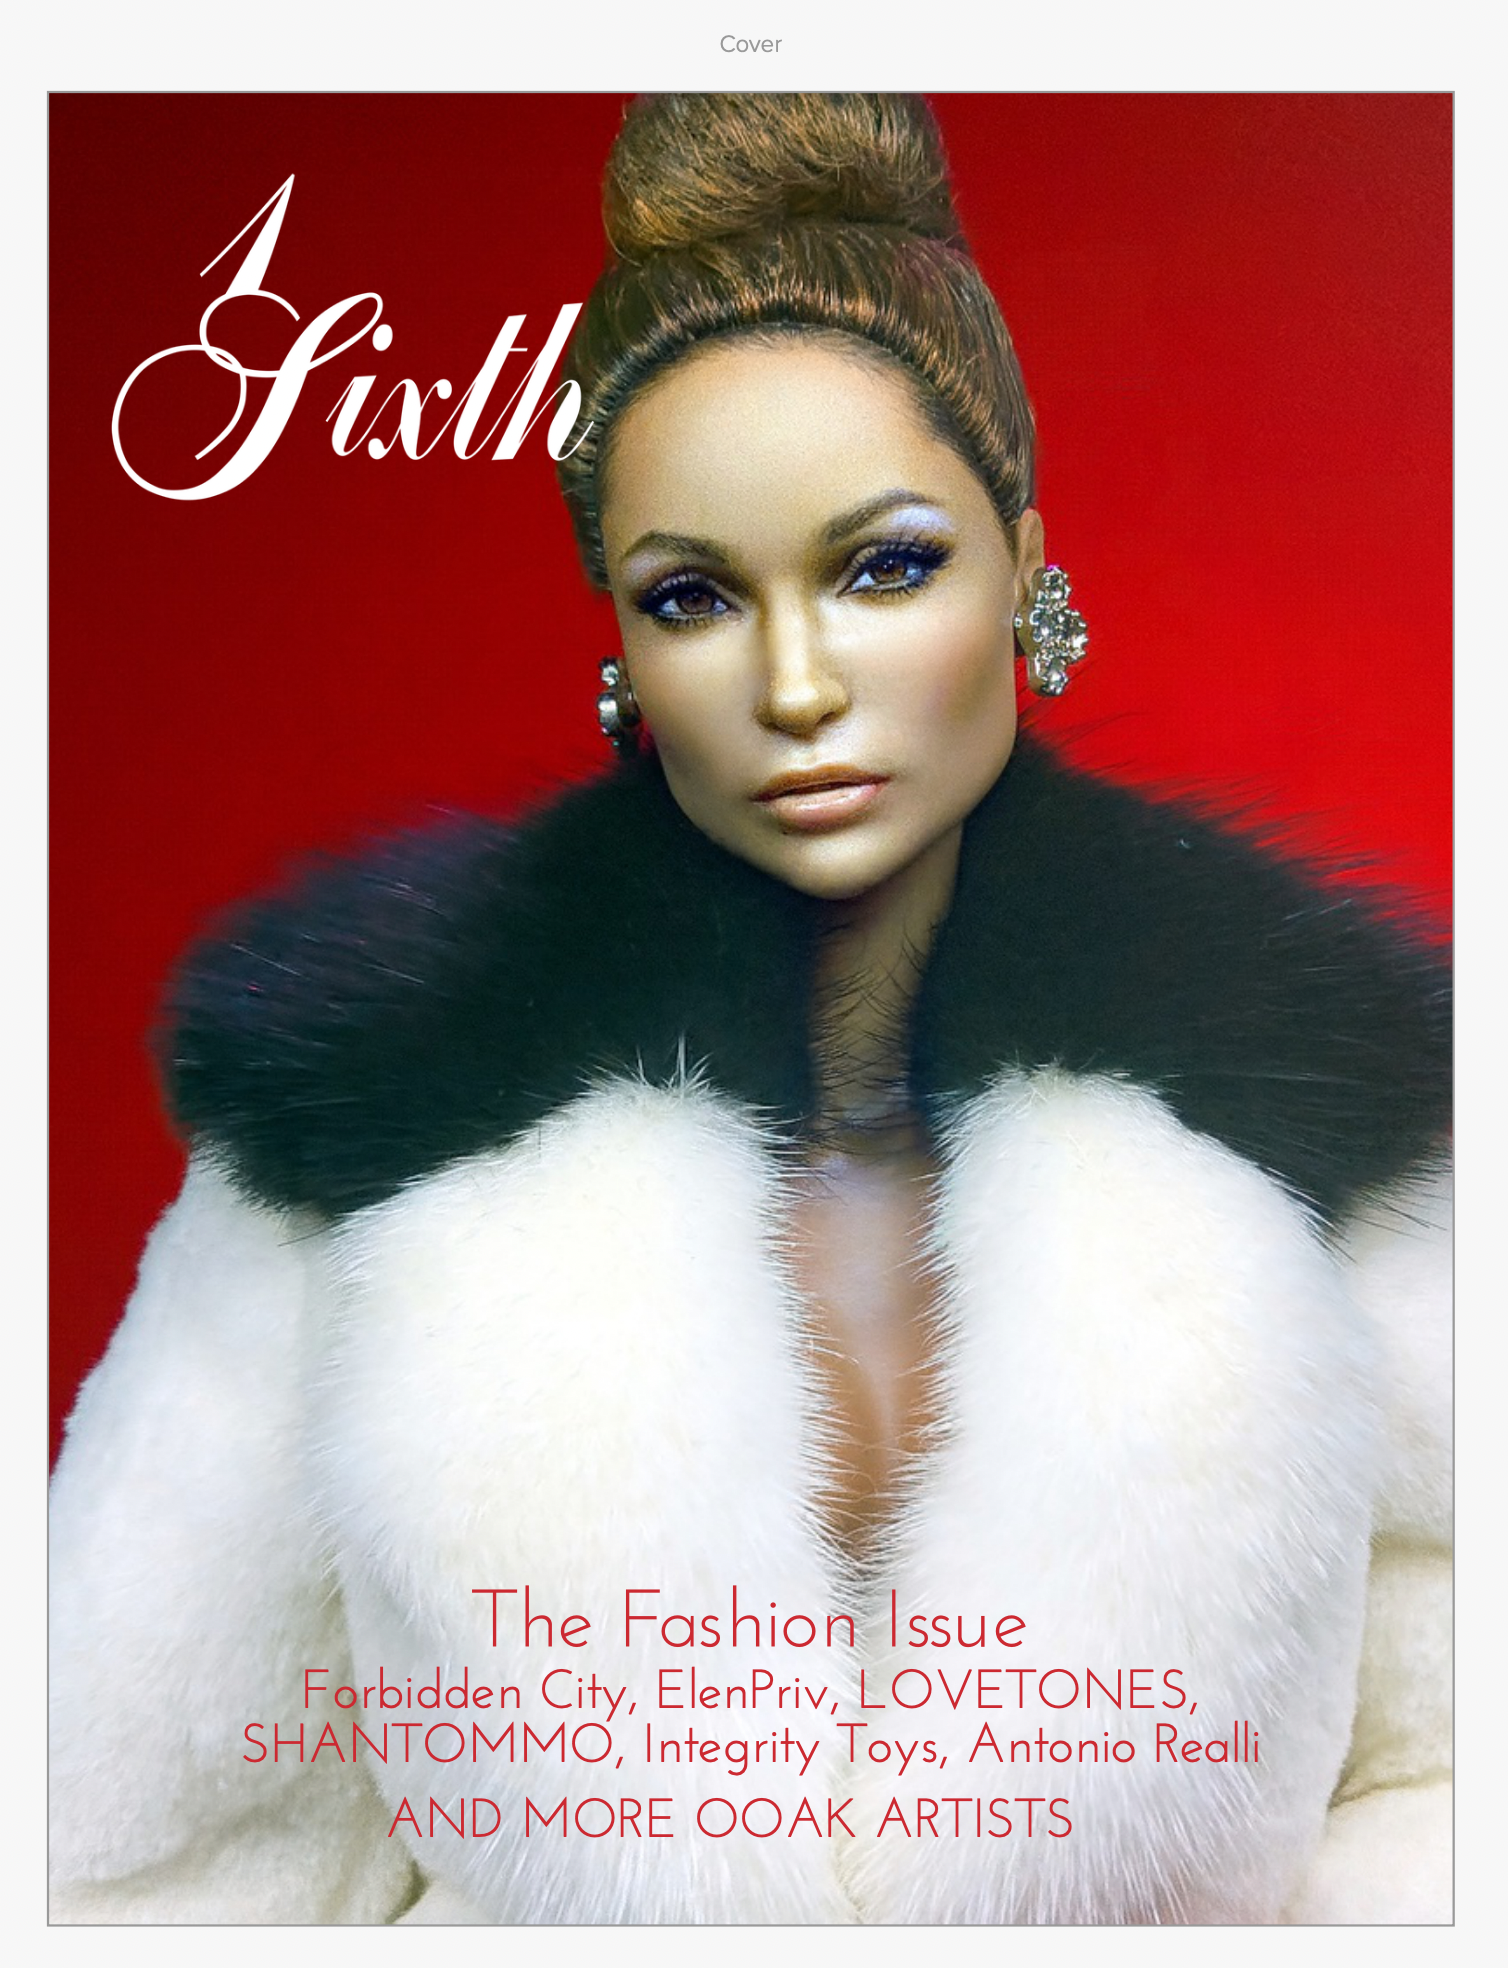 The New Issue of 1Sixth: The Fashion Issue is now for sale.  About the Book One of a Kind Artists for dolls from Integrity Toys, Hot Toys to Barbie with repainted and restyled dolls by Noel Cruz this feature is focused on fashion by designers such as Antonio Realli, Ryan Liang of SHANTOMMO and ElenPriv as well as fashions by Mattel and Dressmaker Details. If you are a doll collector then this beautiful book is for you or someone who collects.  https://www.blurb.com/b/10546843-1sixth  Author website https://1sixth.co  * Primary Category: Arts & Photography Books * Additional Categories Coffee Table Books * Project Option: US Letter, 8.5×11 in, 22×28 cm * # of Pages: 192 * Publish Date: Jan 18, 2021